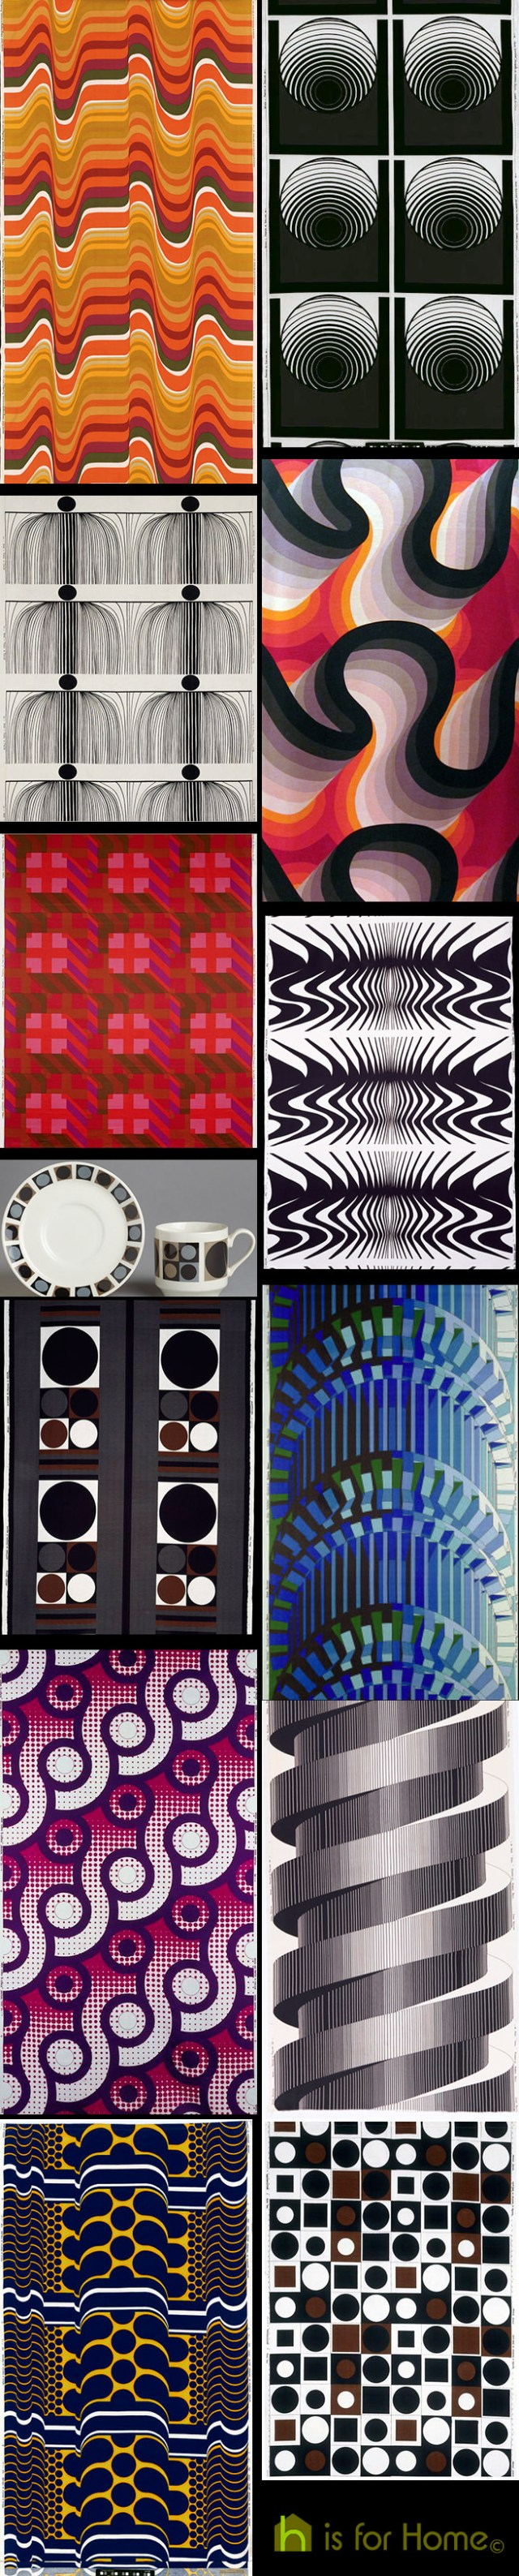 Collage of Barbara Brown textile designs | H is for Home